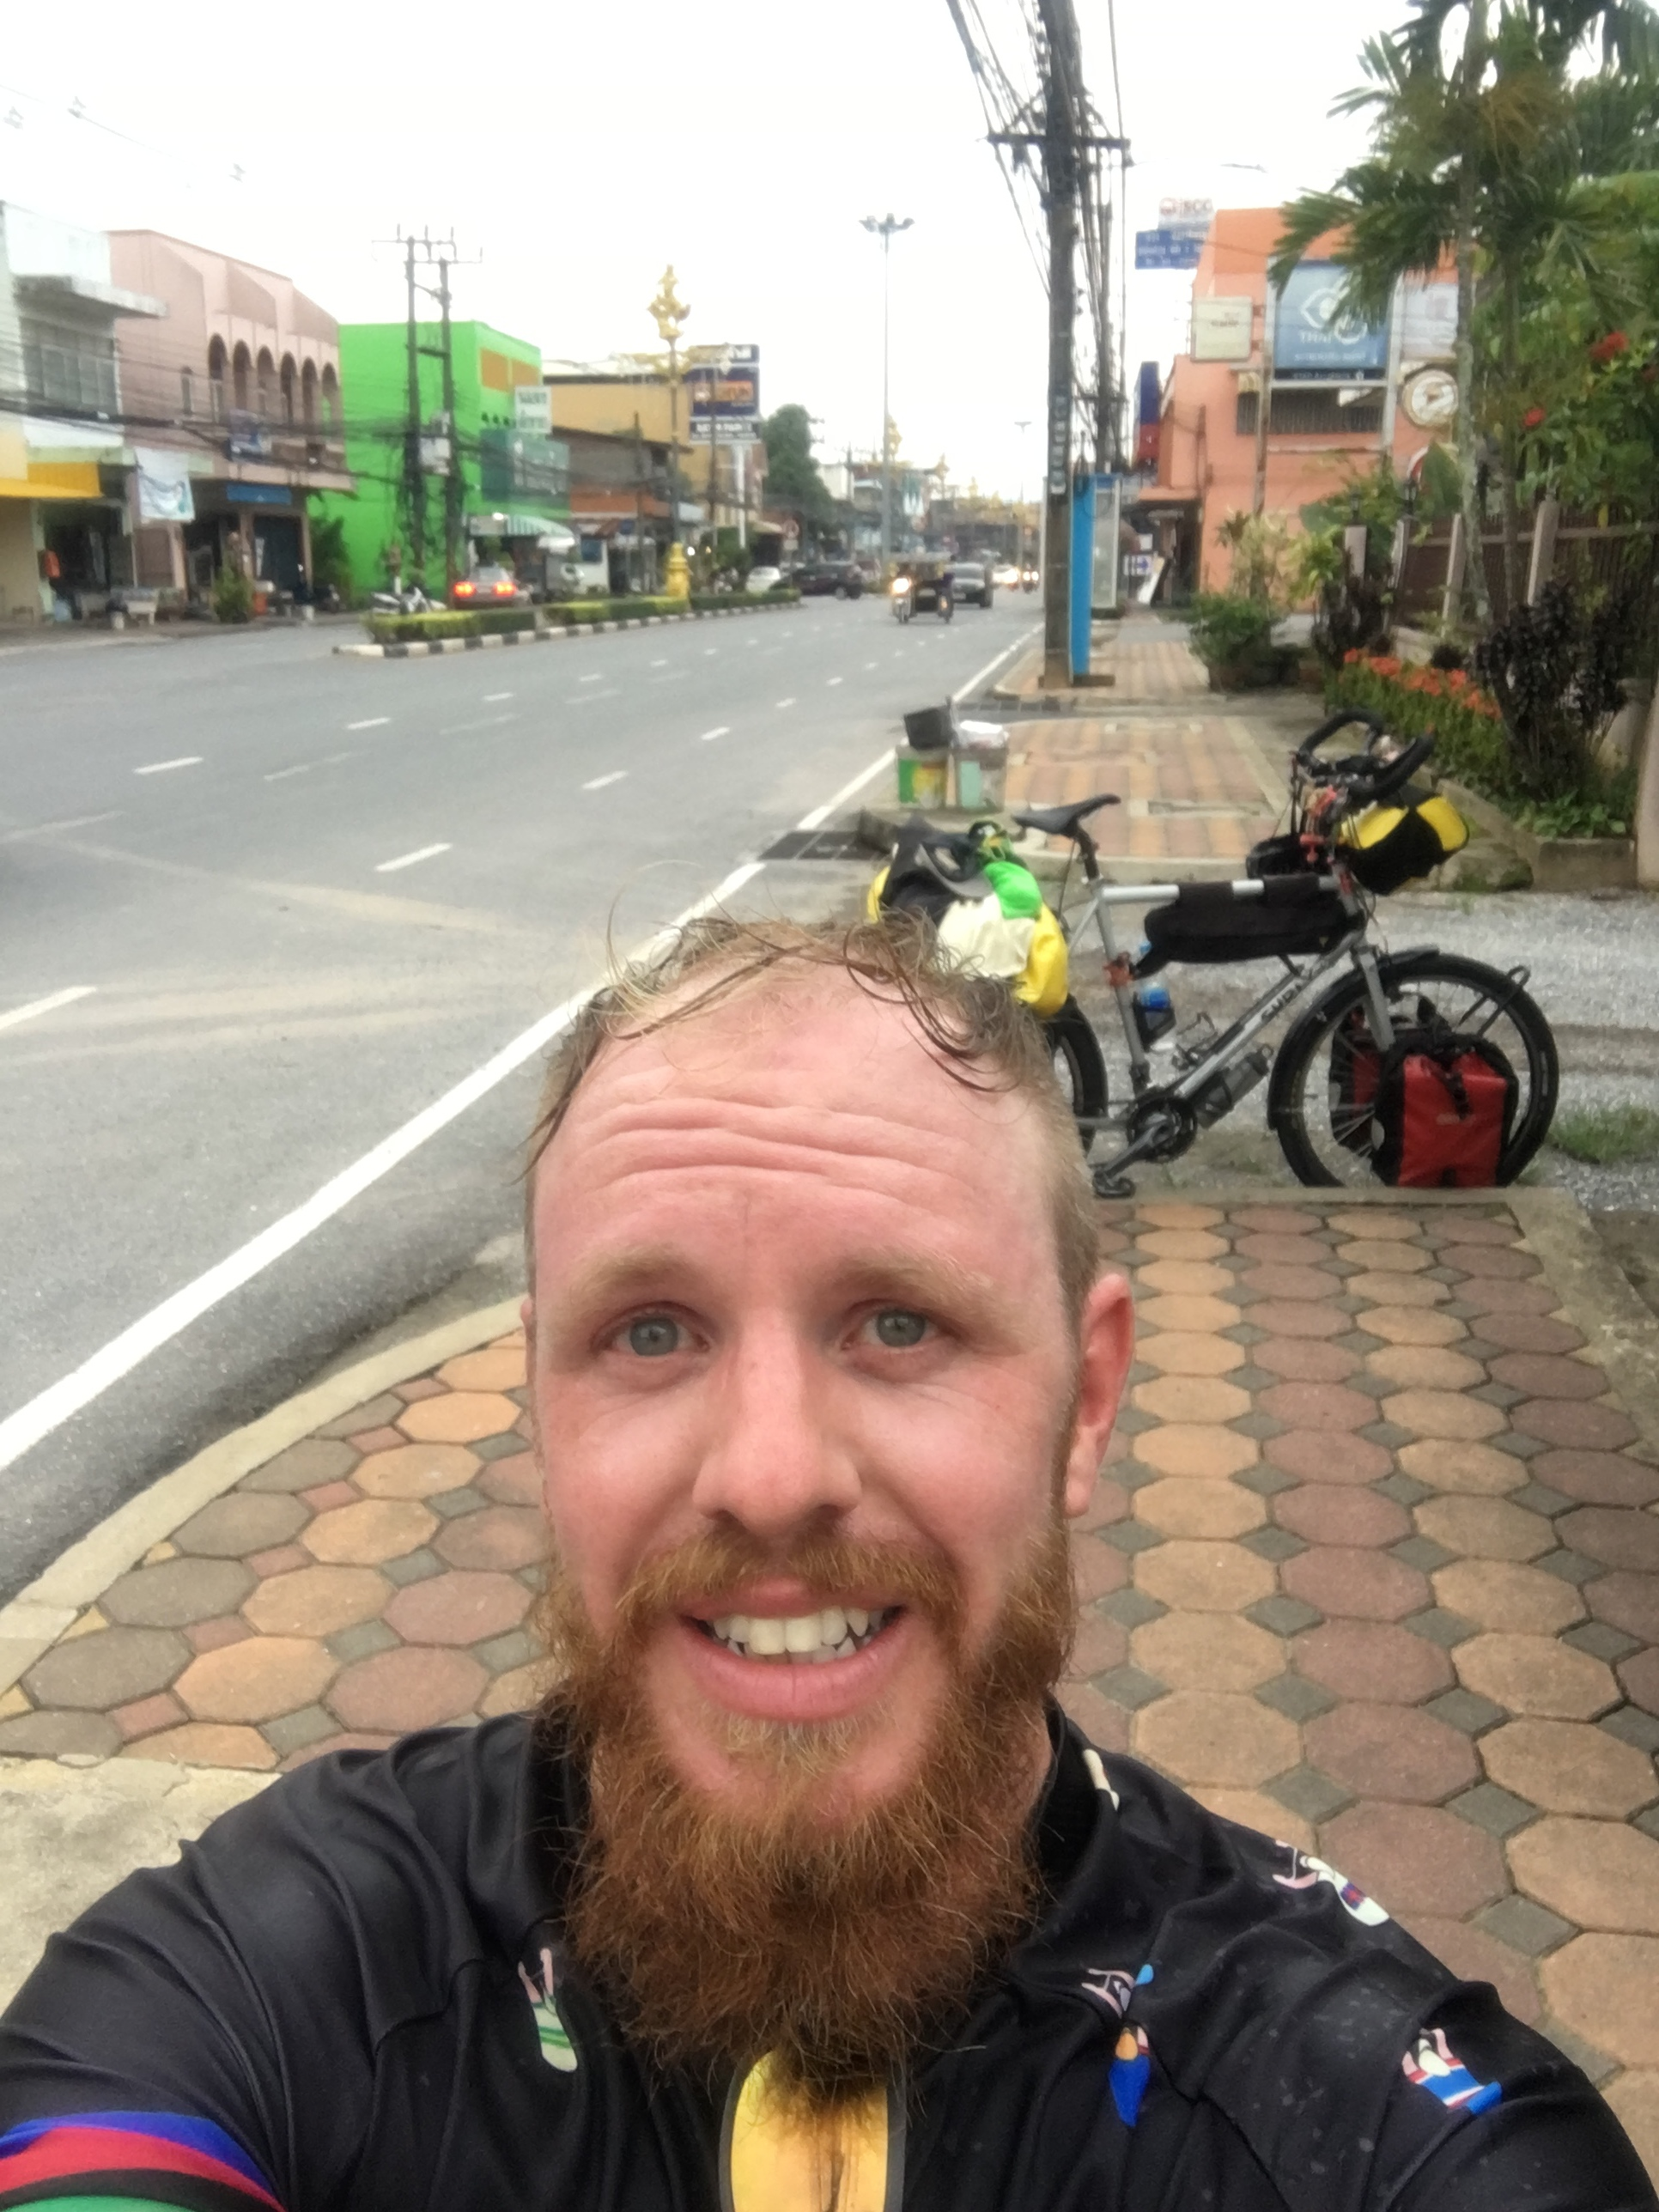 Arriving in Satun, the last town in Thailand before entering Malaysia the next morning.